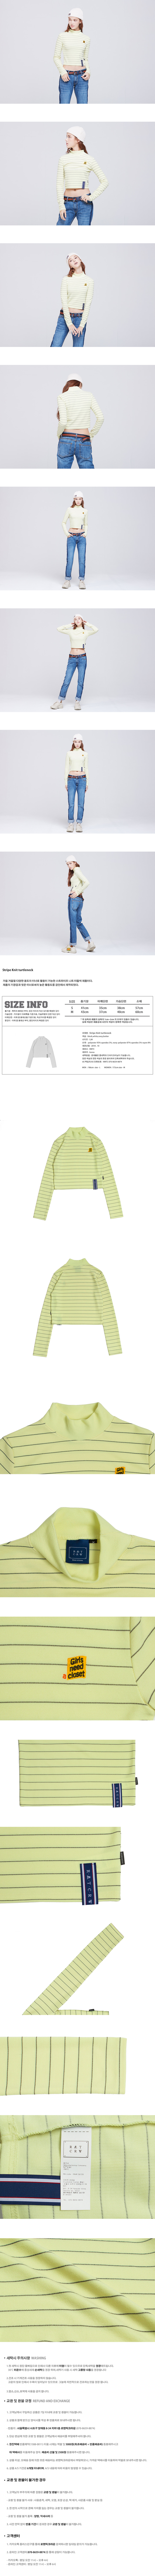 로맨틱크라운(ROMANTIC CROWN) Stripe Knit Turtleneck_Butter